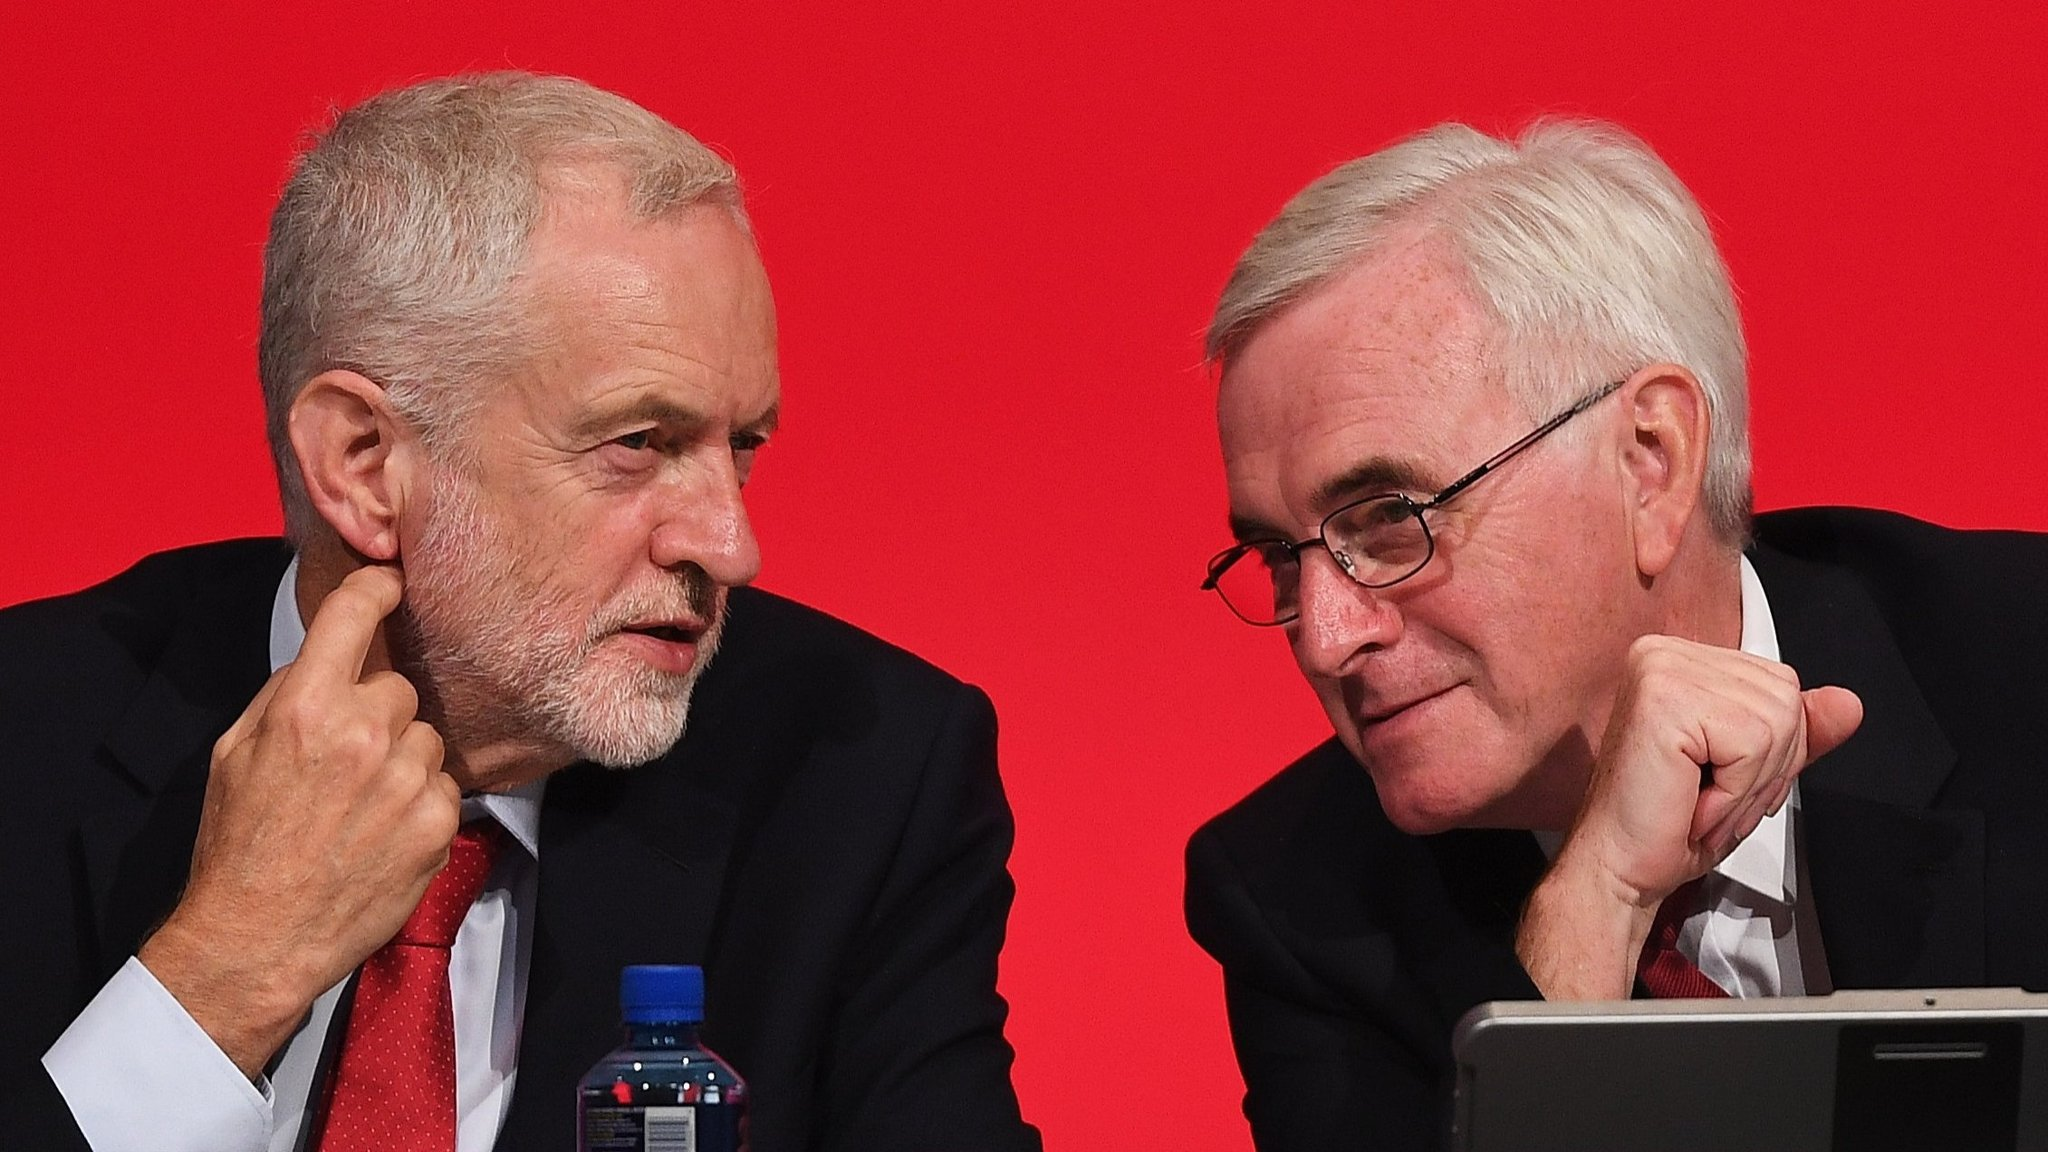 John McDonnell says he will step down if Labour lose election